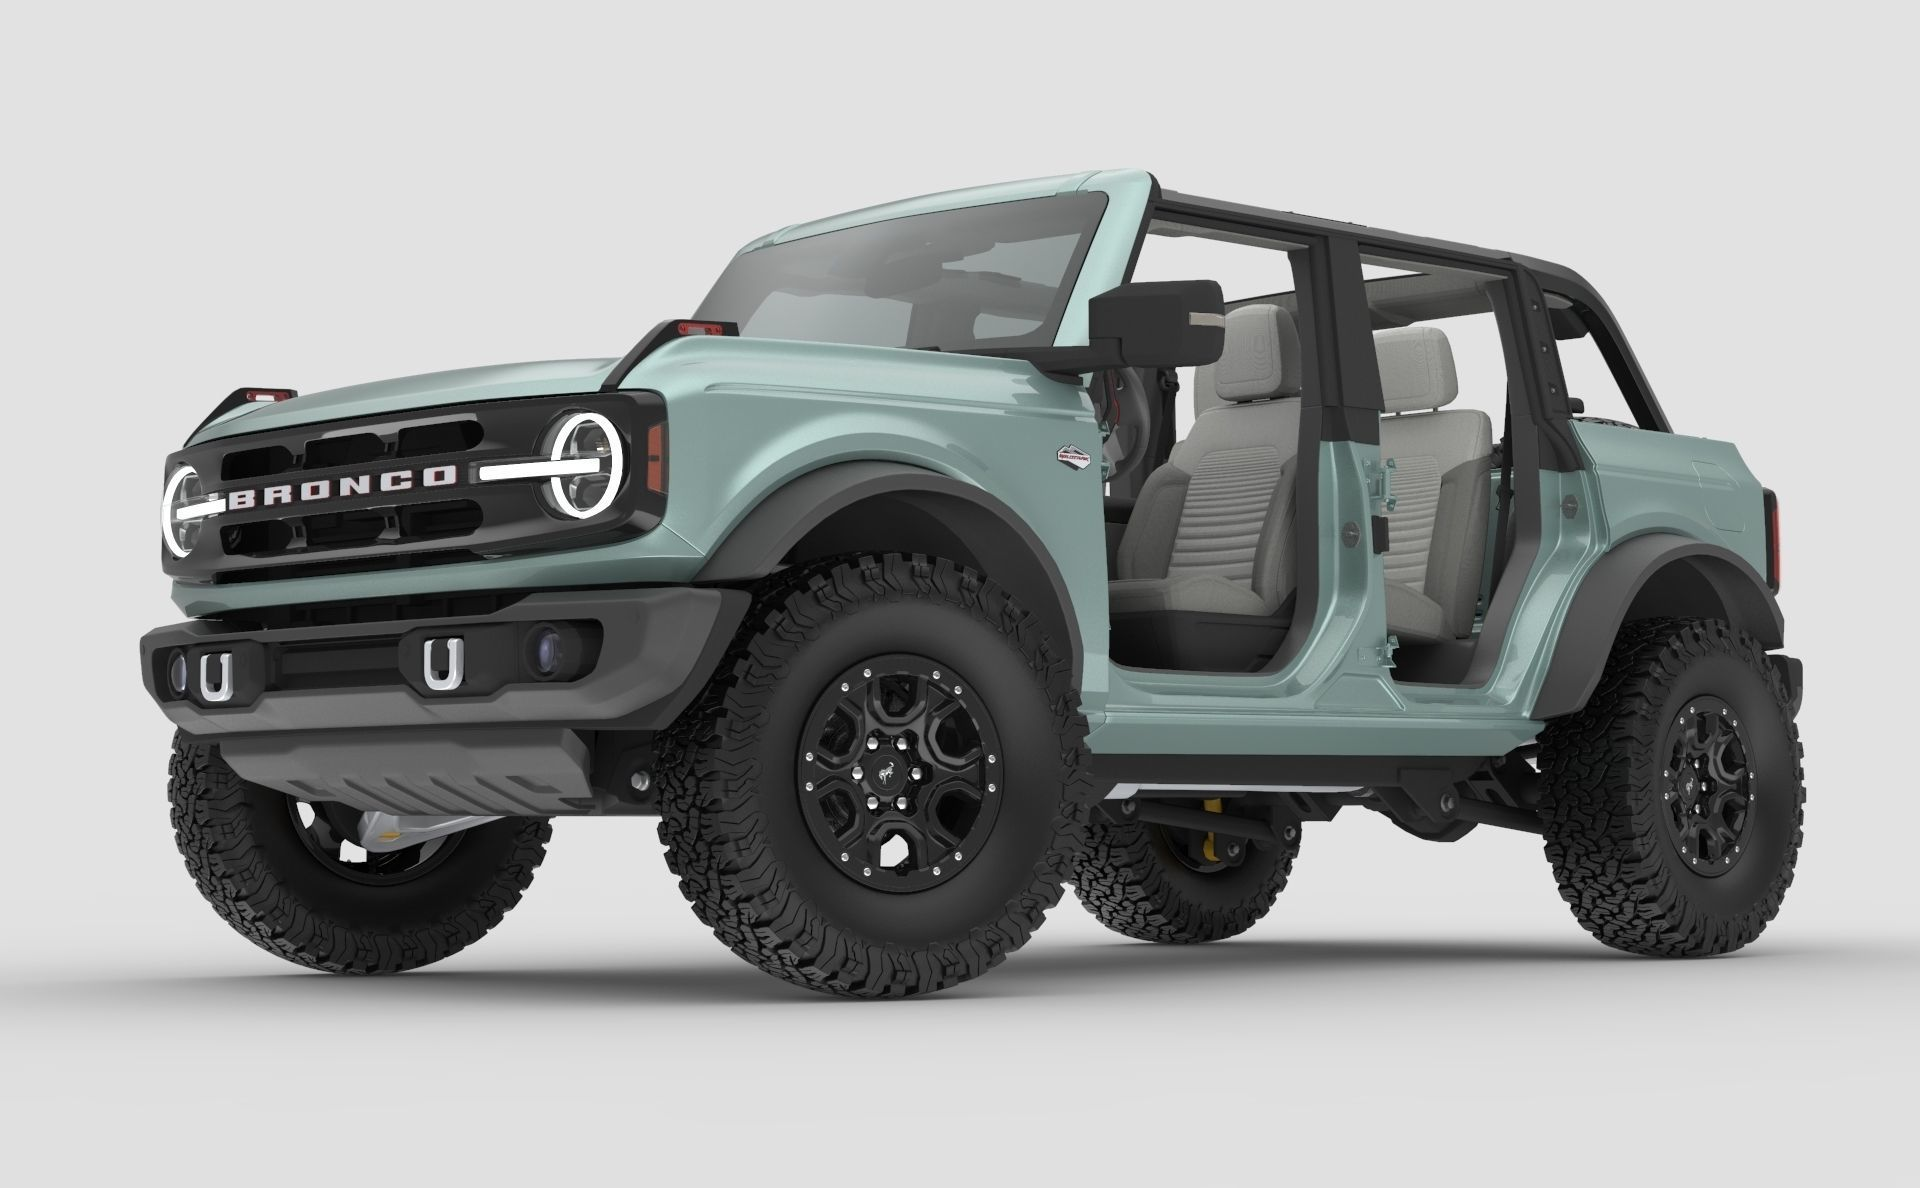 2021 Ford Bronco 4-door game ready